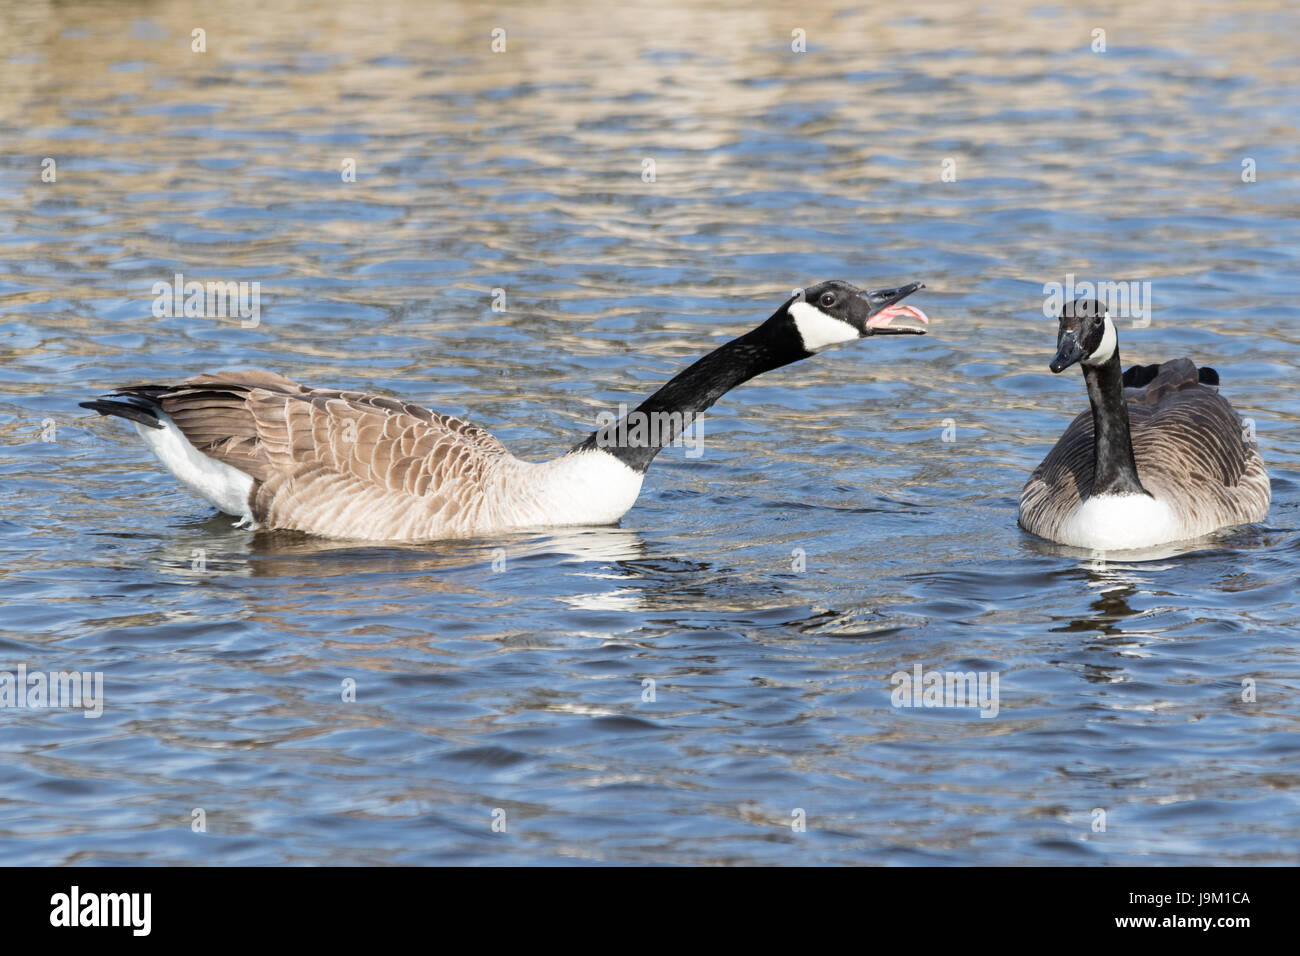 Two Canada geese and one is honking at the other - Stock Image